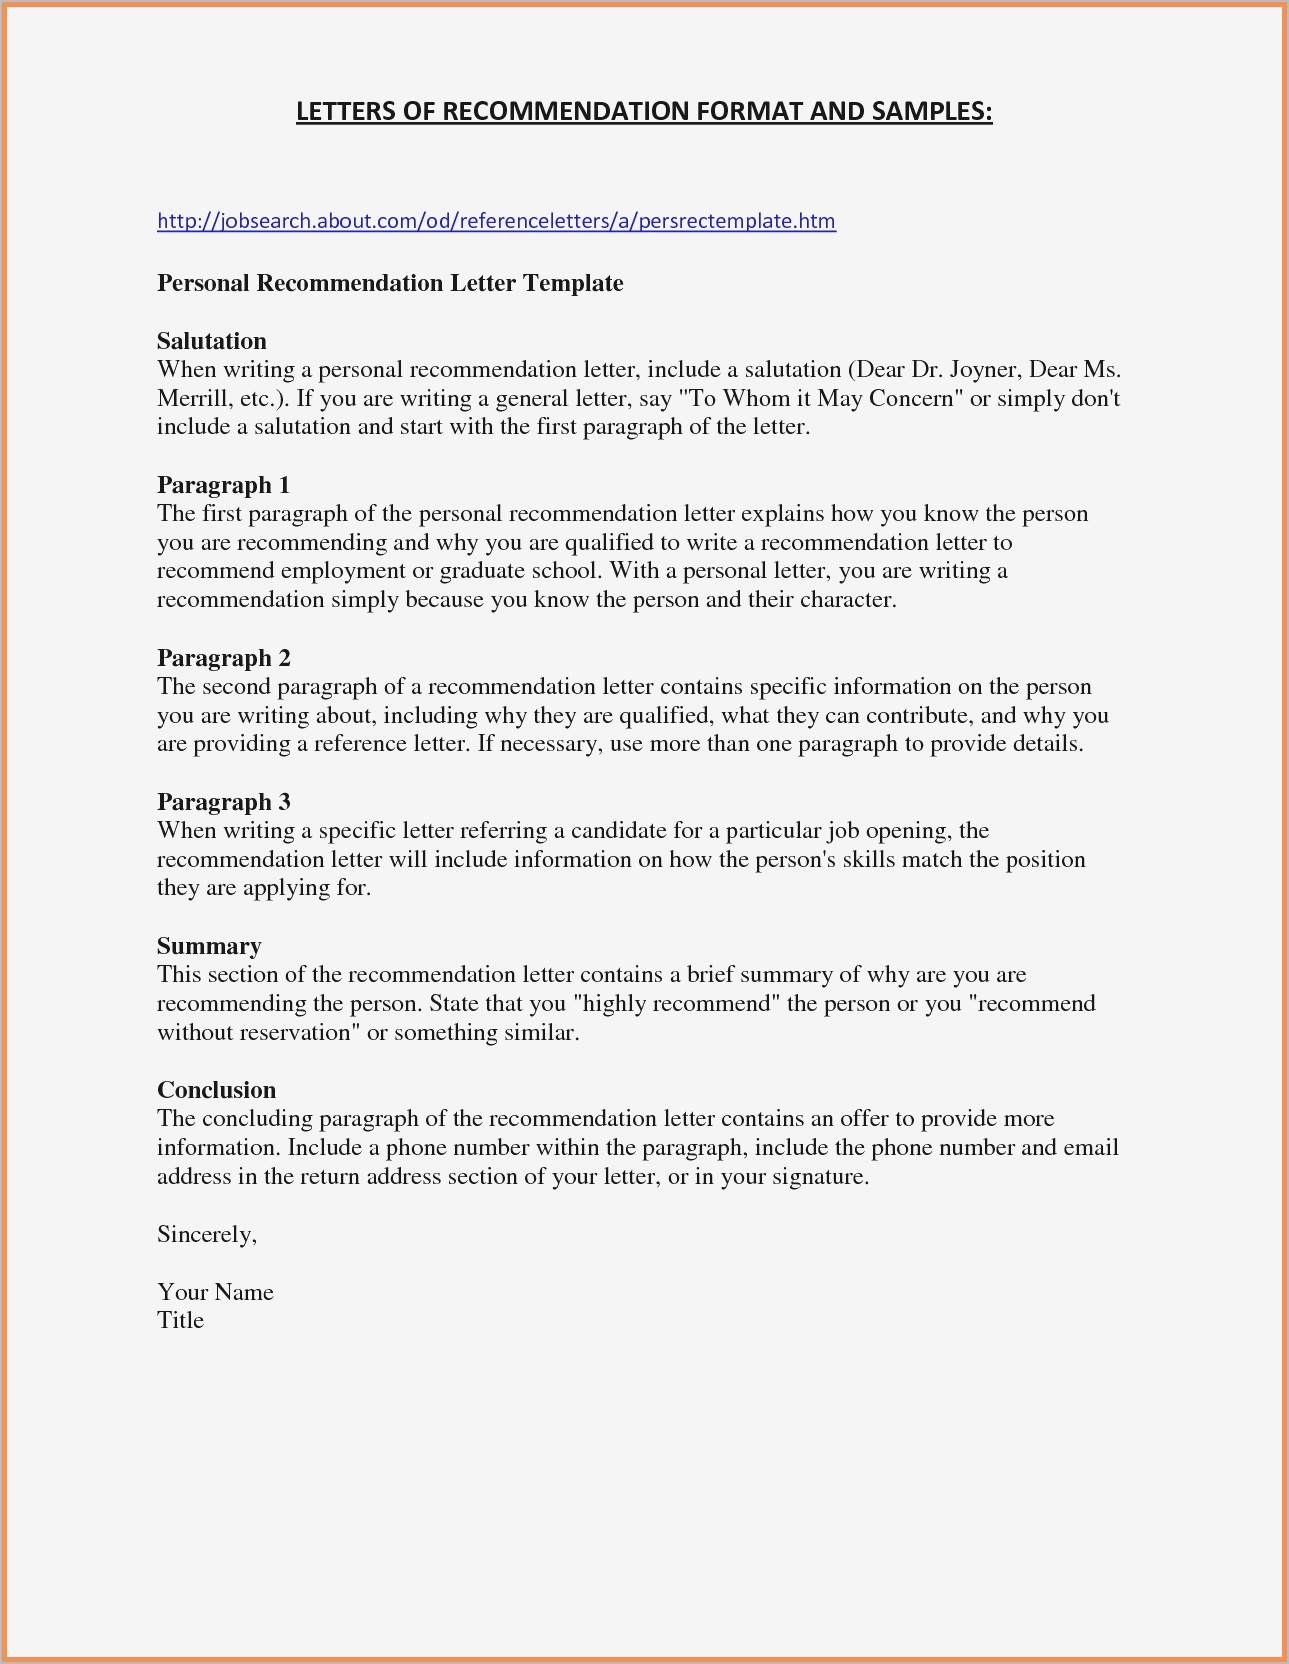 Free Employment Reference Letter Template - Job Letter Re Mendation Template Best Free Letter Re Mendation